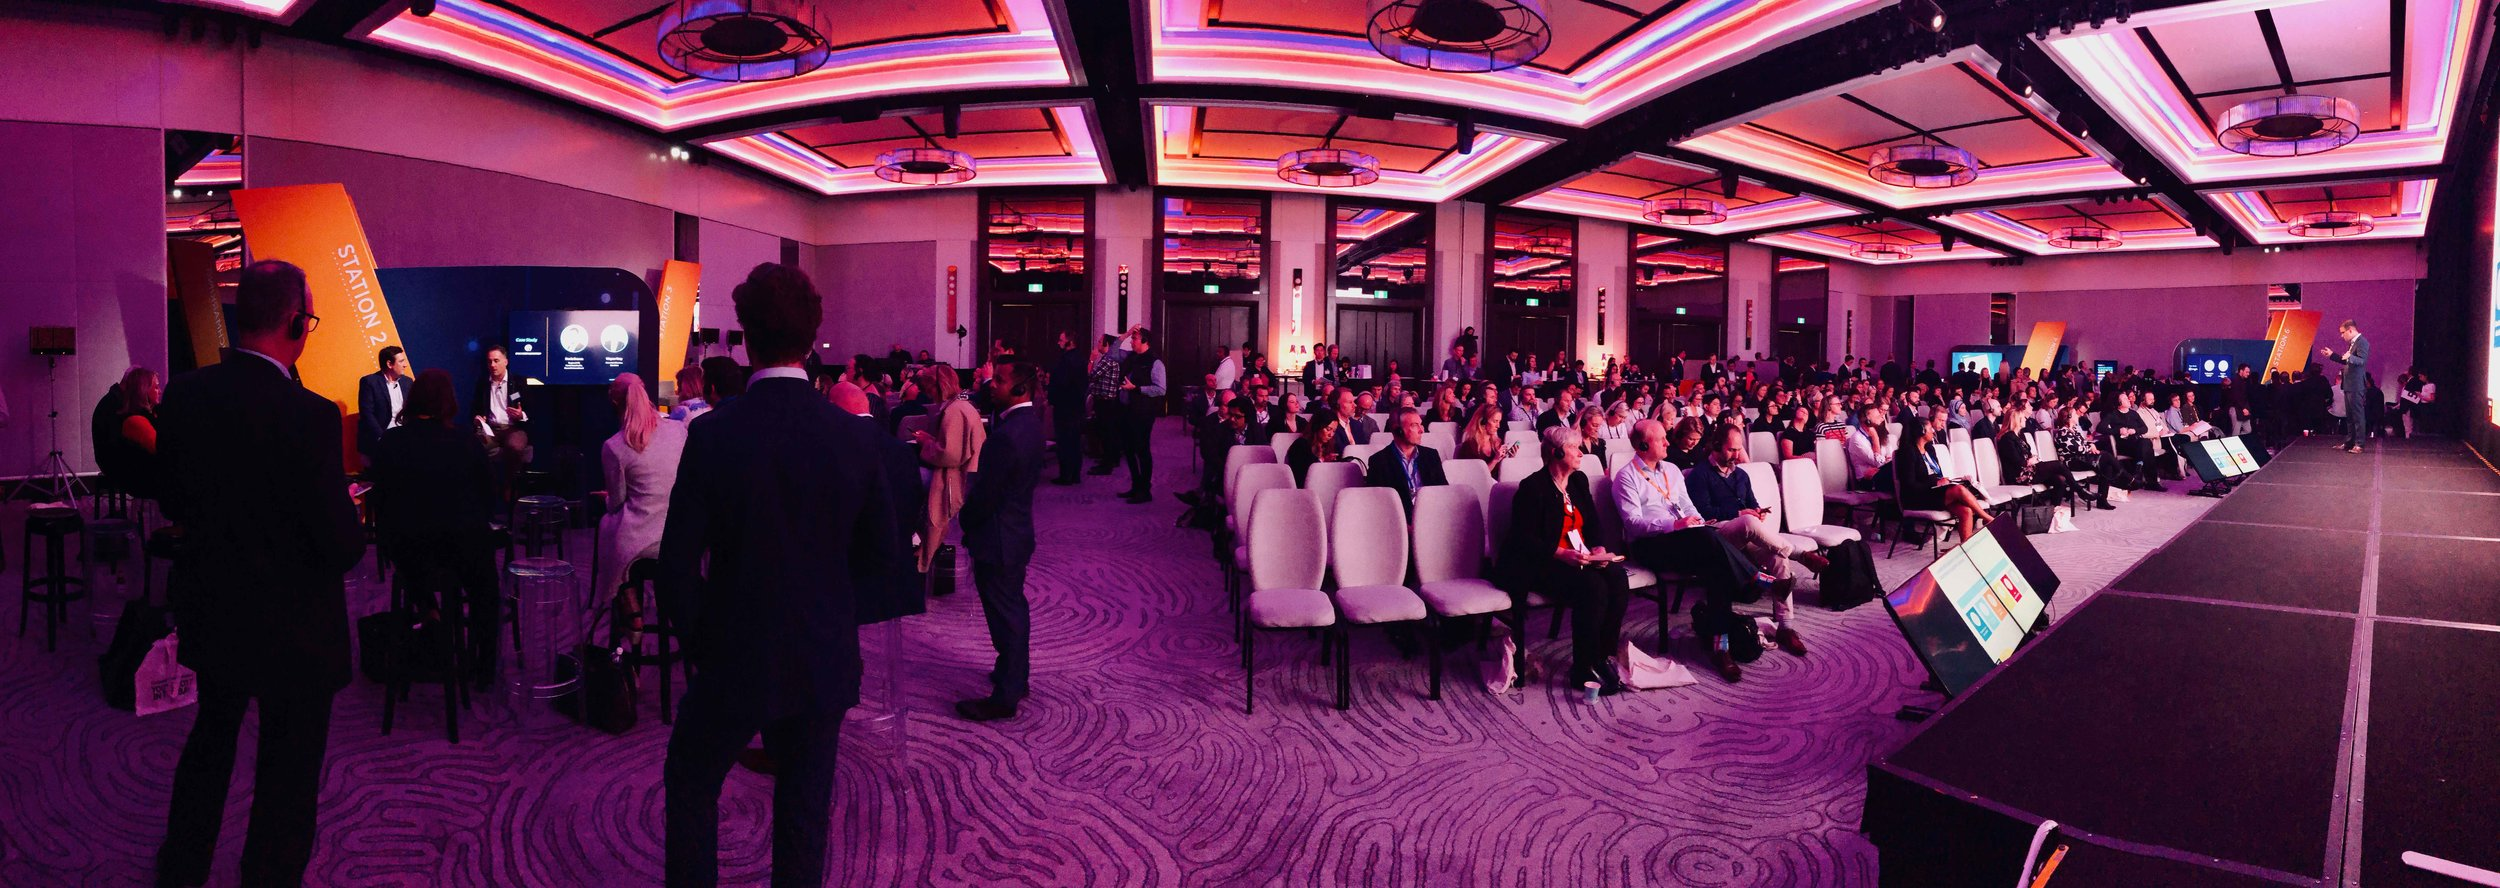 wide shot of multiple presentations using silent conference